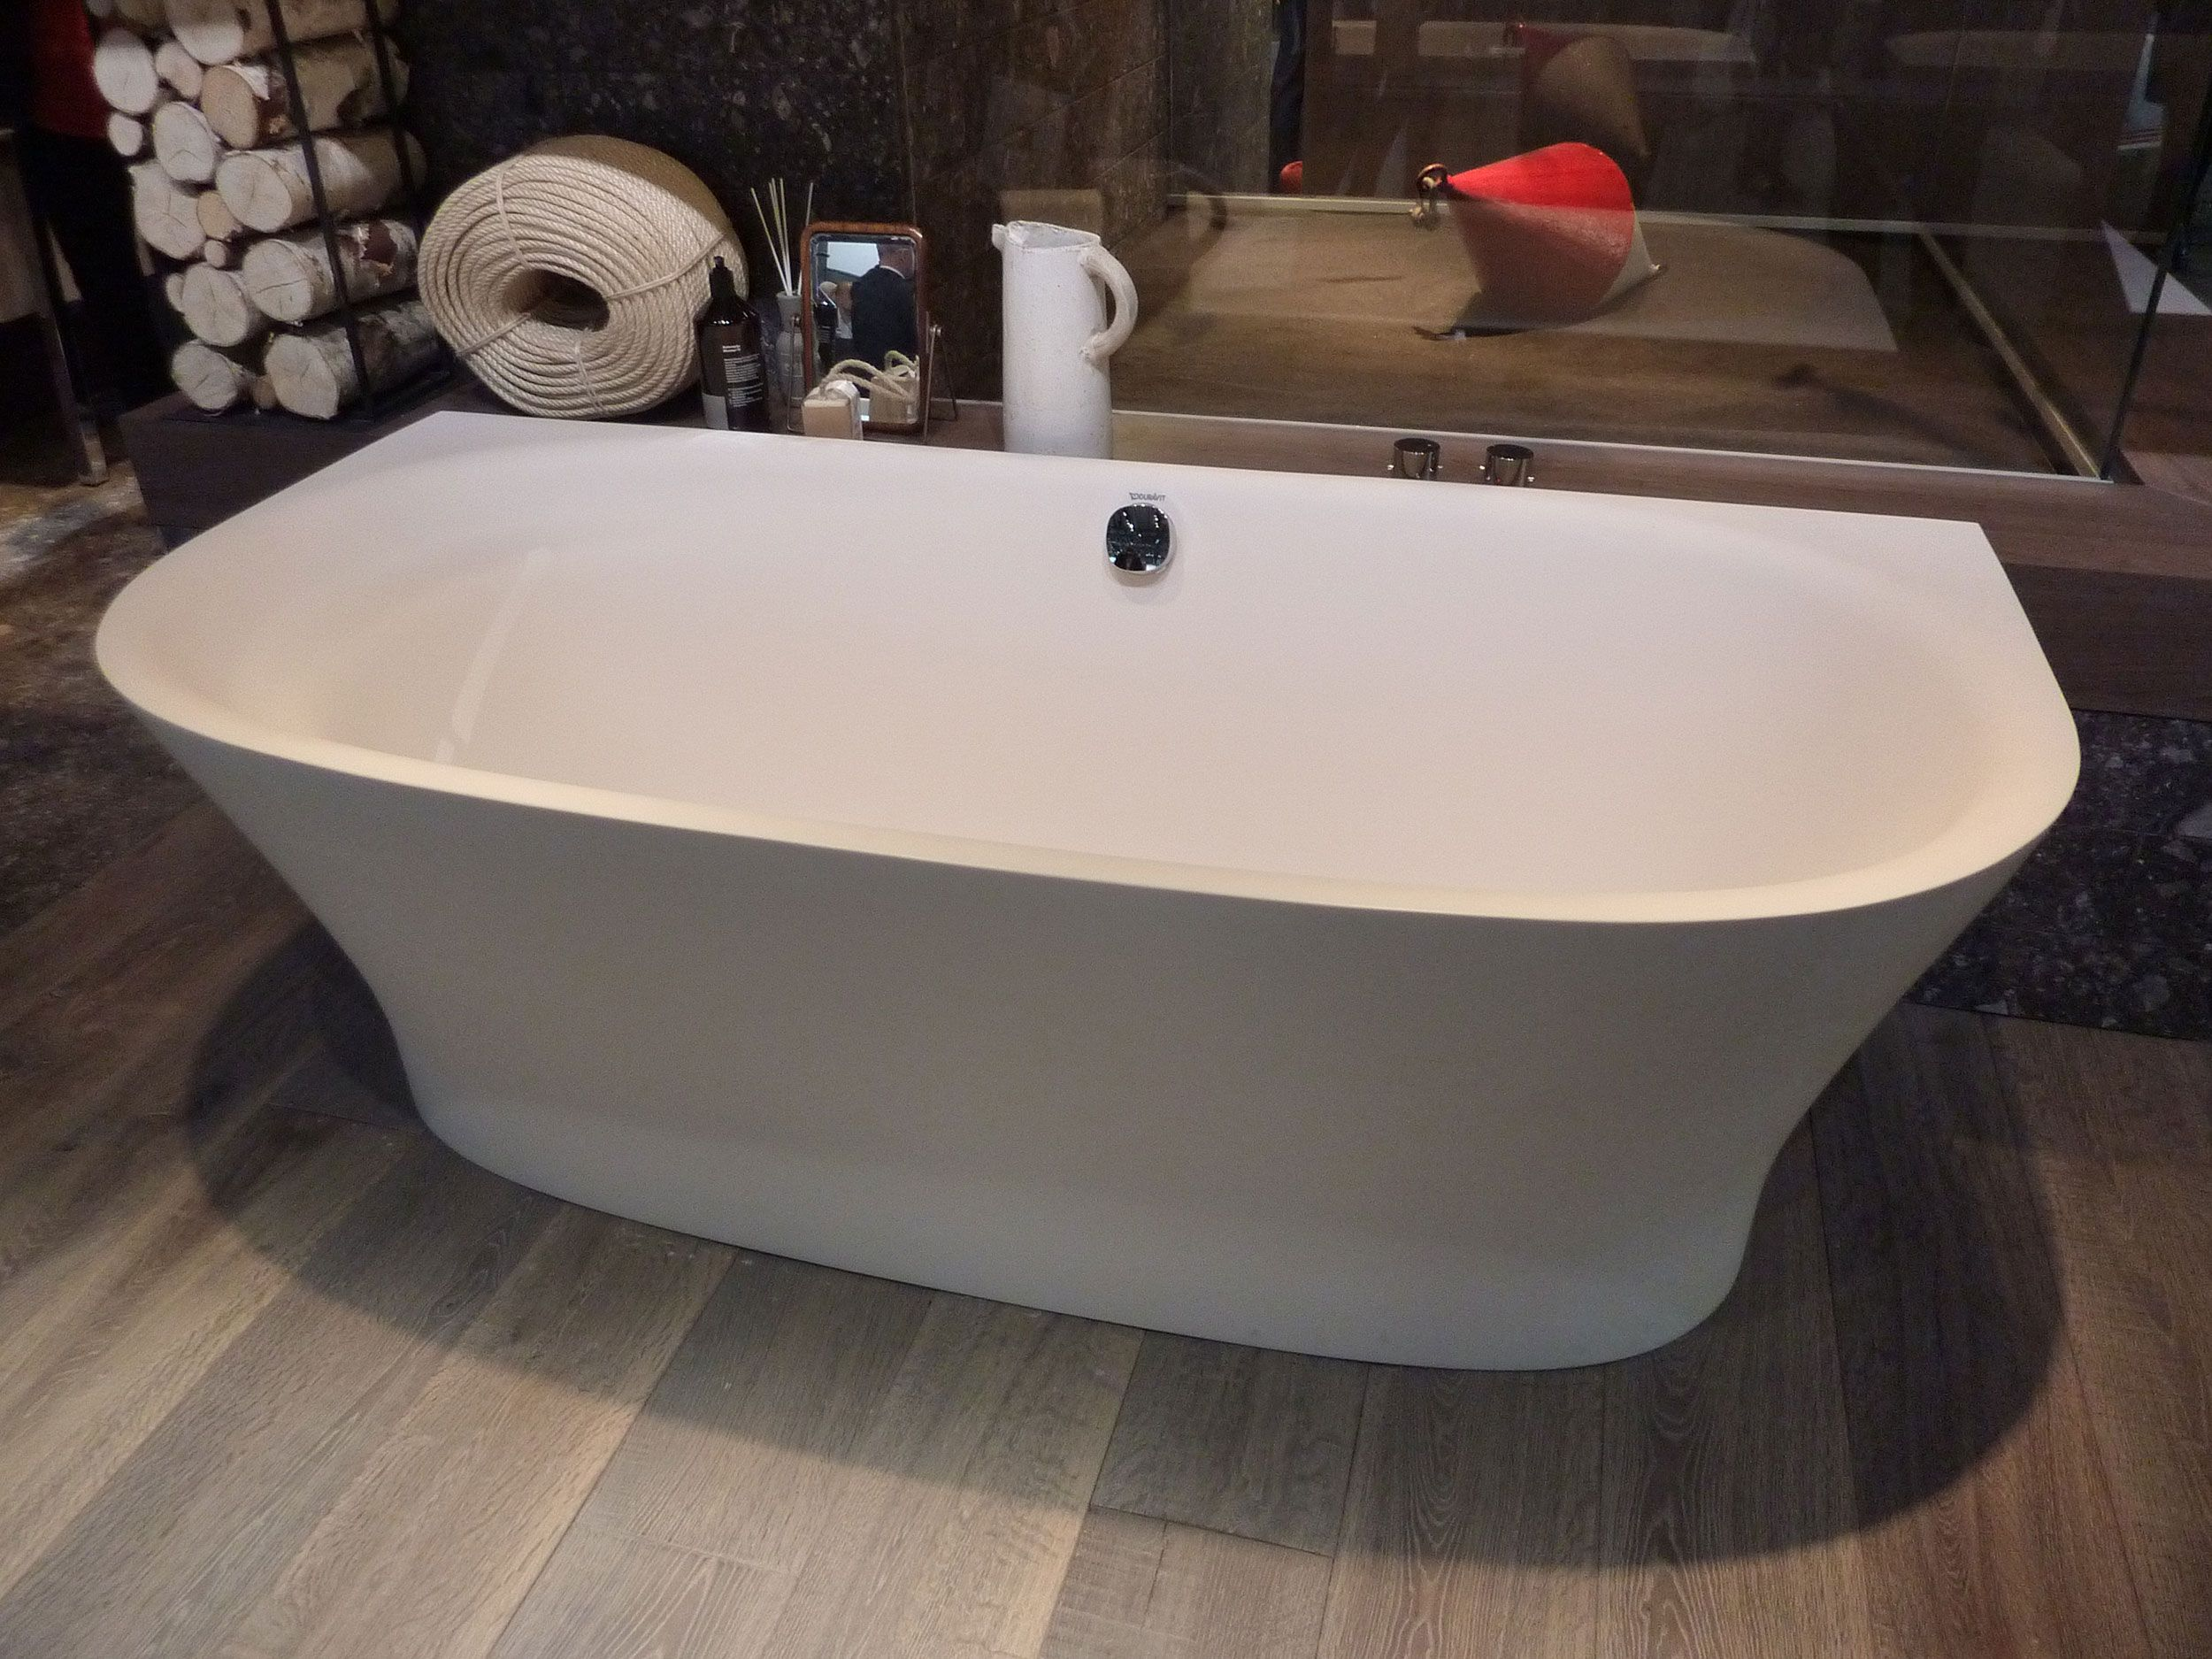 Duravit Bath #ISH15 | professional | Pinterest | Duravit and Bath